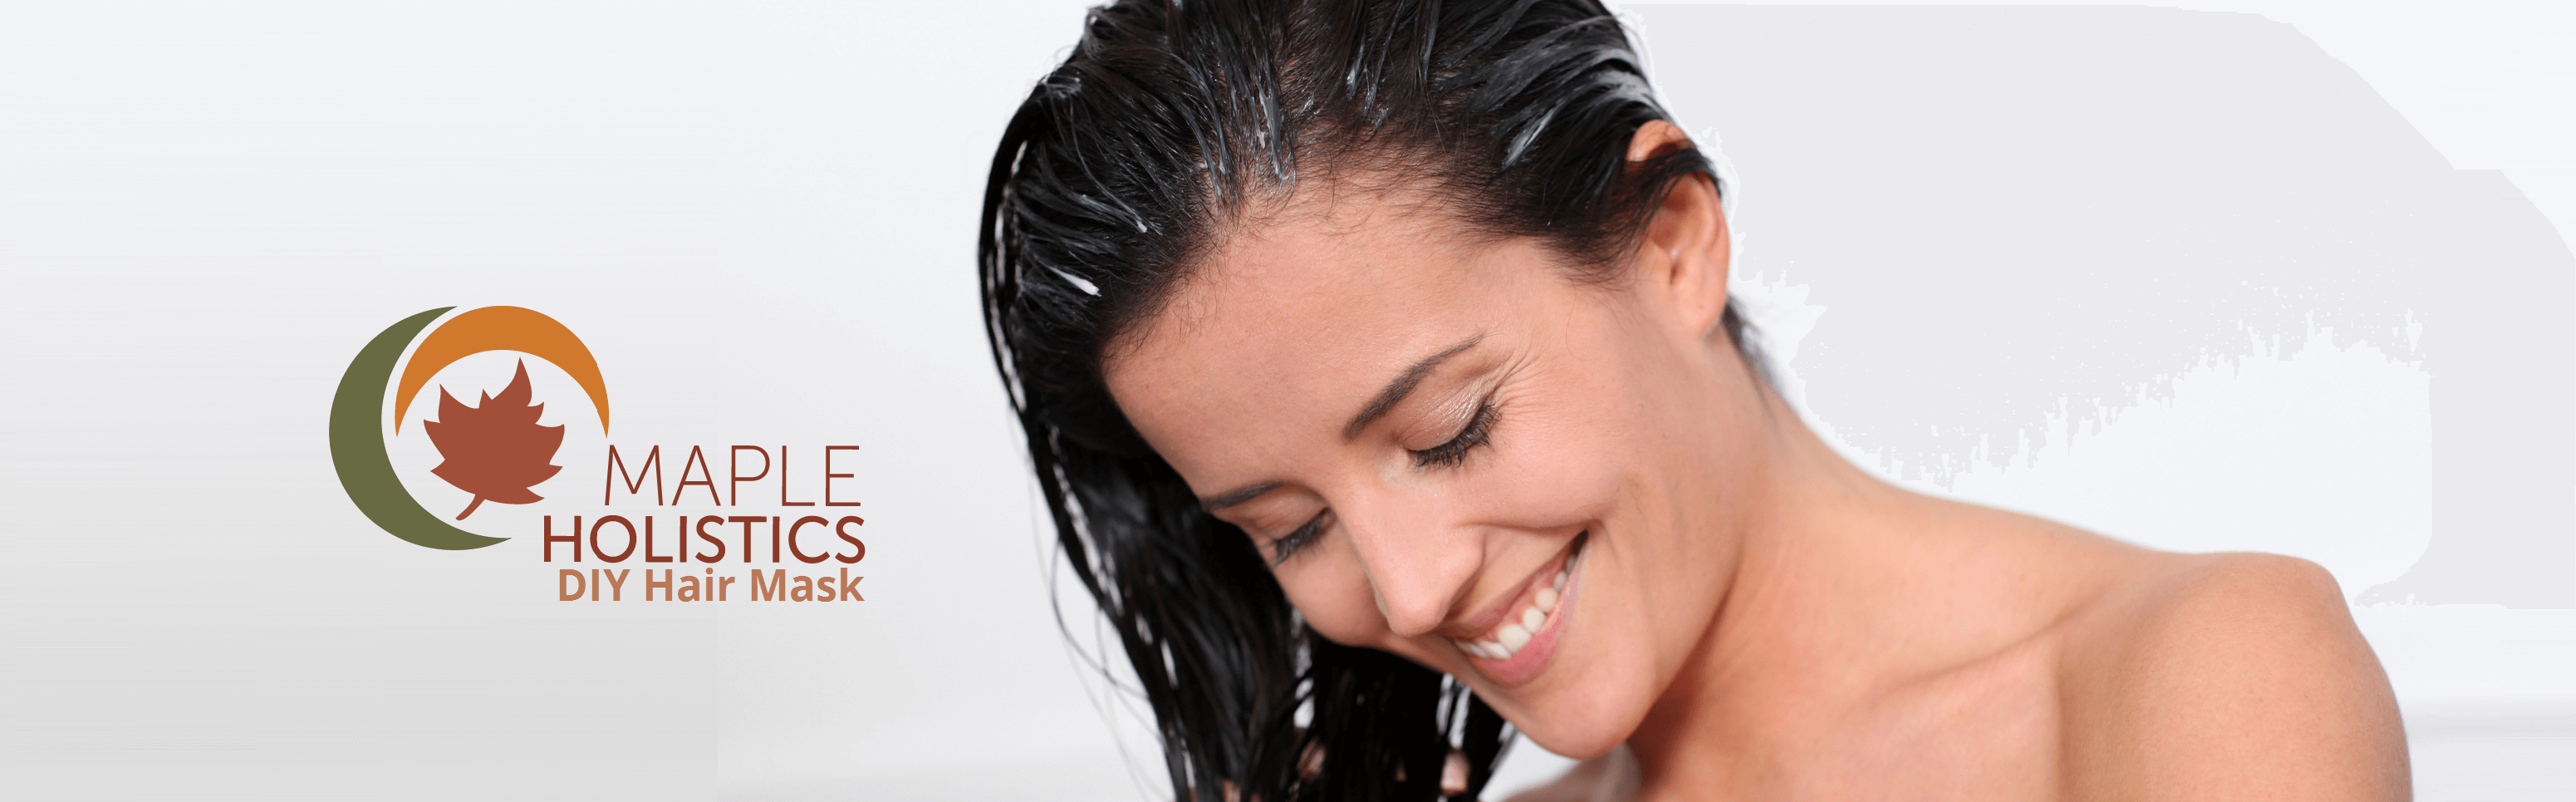 Woman smiling with product in her hair.